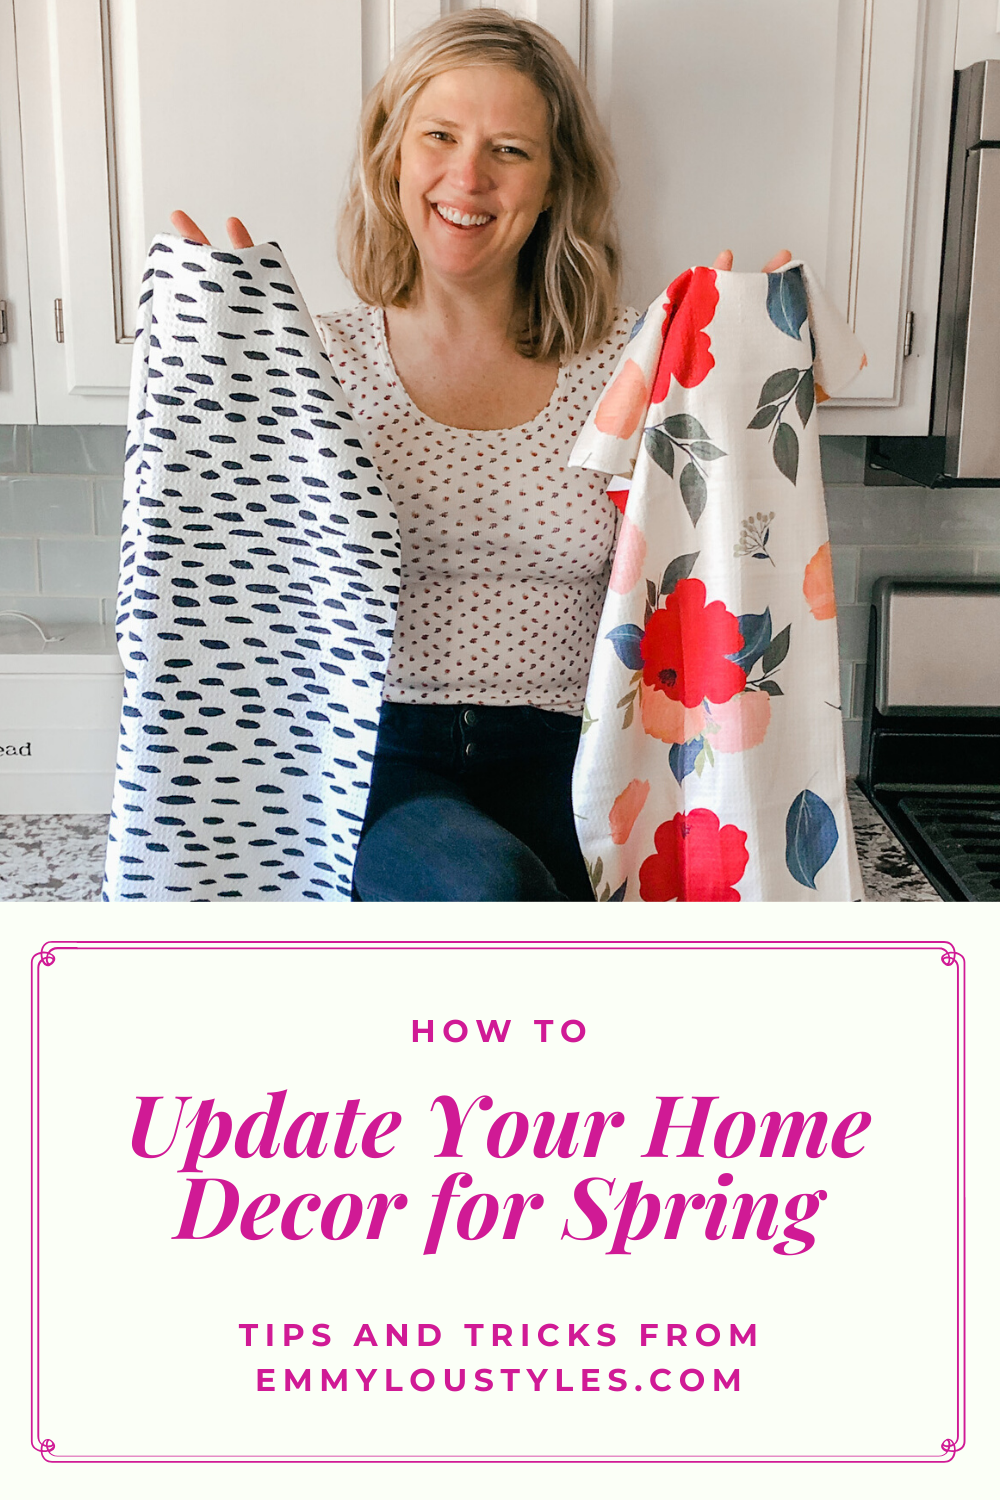 If you're looking for ways to update your home decor with some spring touches, this is the post for you!  9 tips + tricks for ways to add a few spring touches to your home decor without breaking the bank.  The post covers everything from candles, to kitchen towels.  Read now!  #spring #springhomedecor #homesweethome